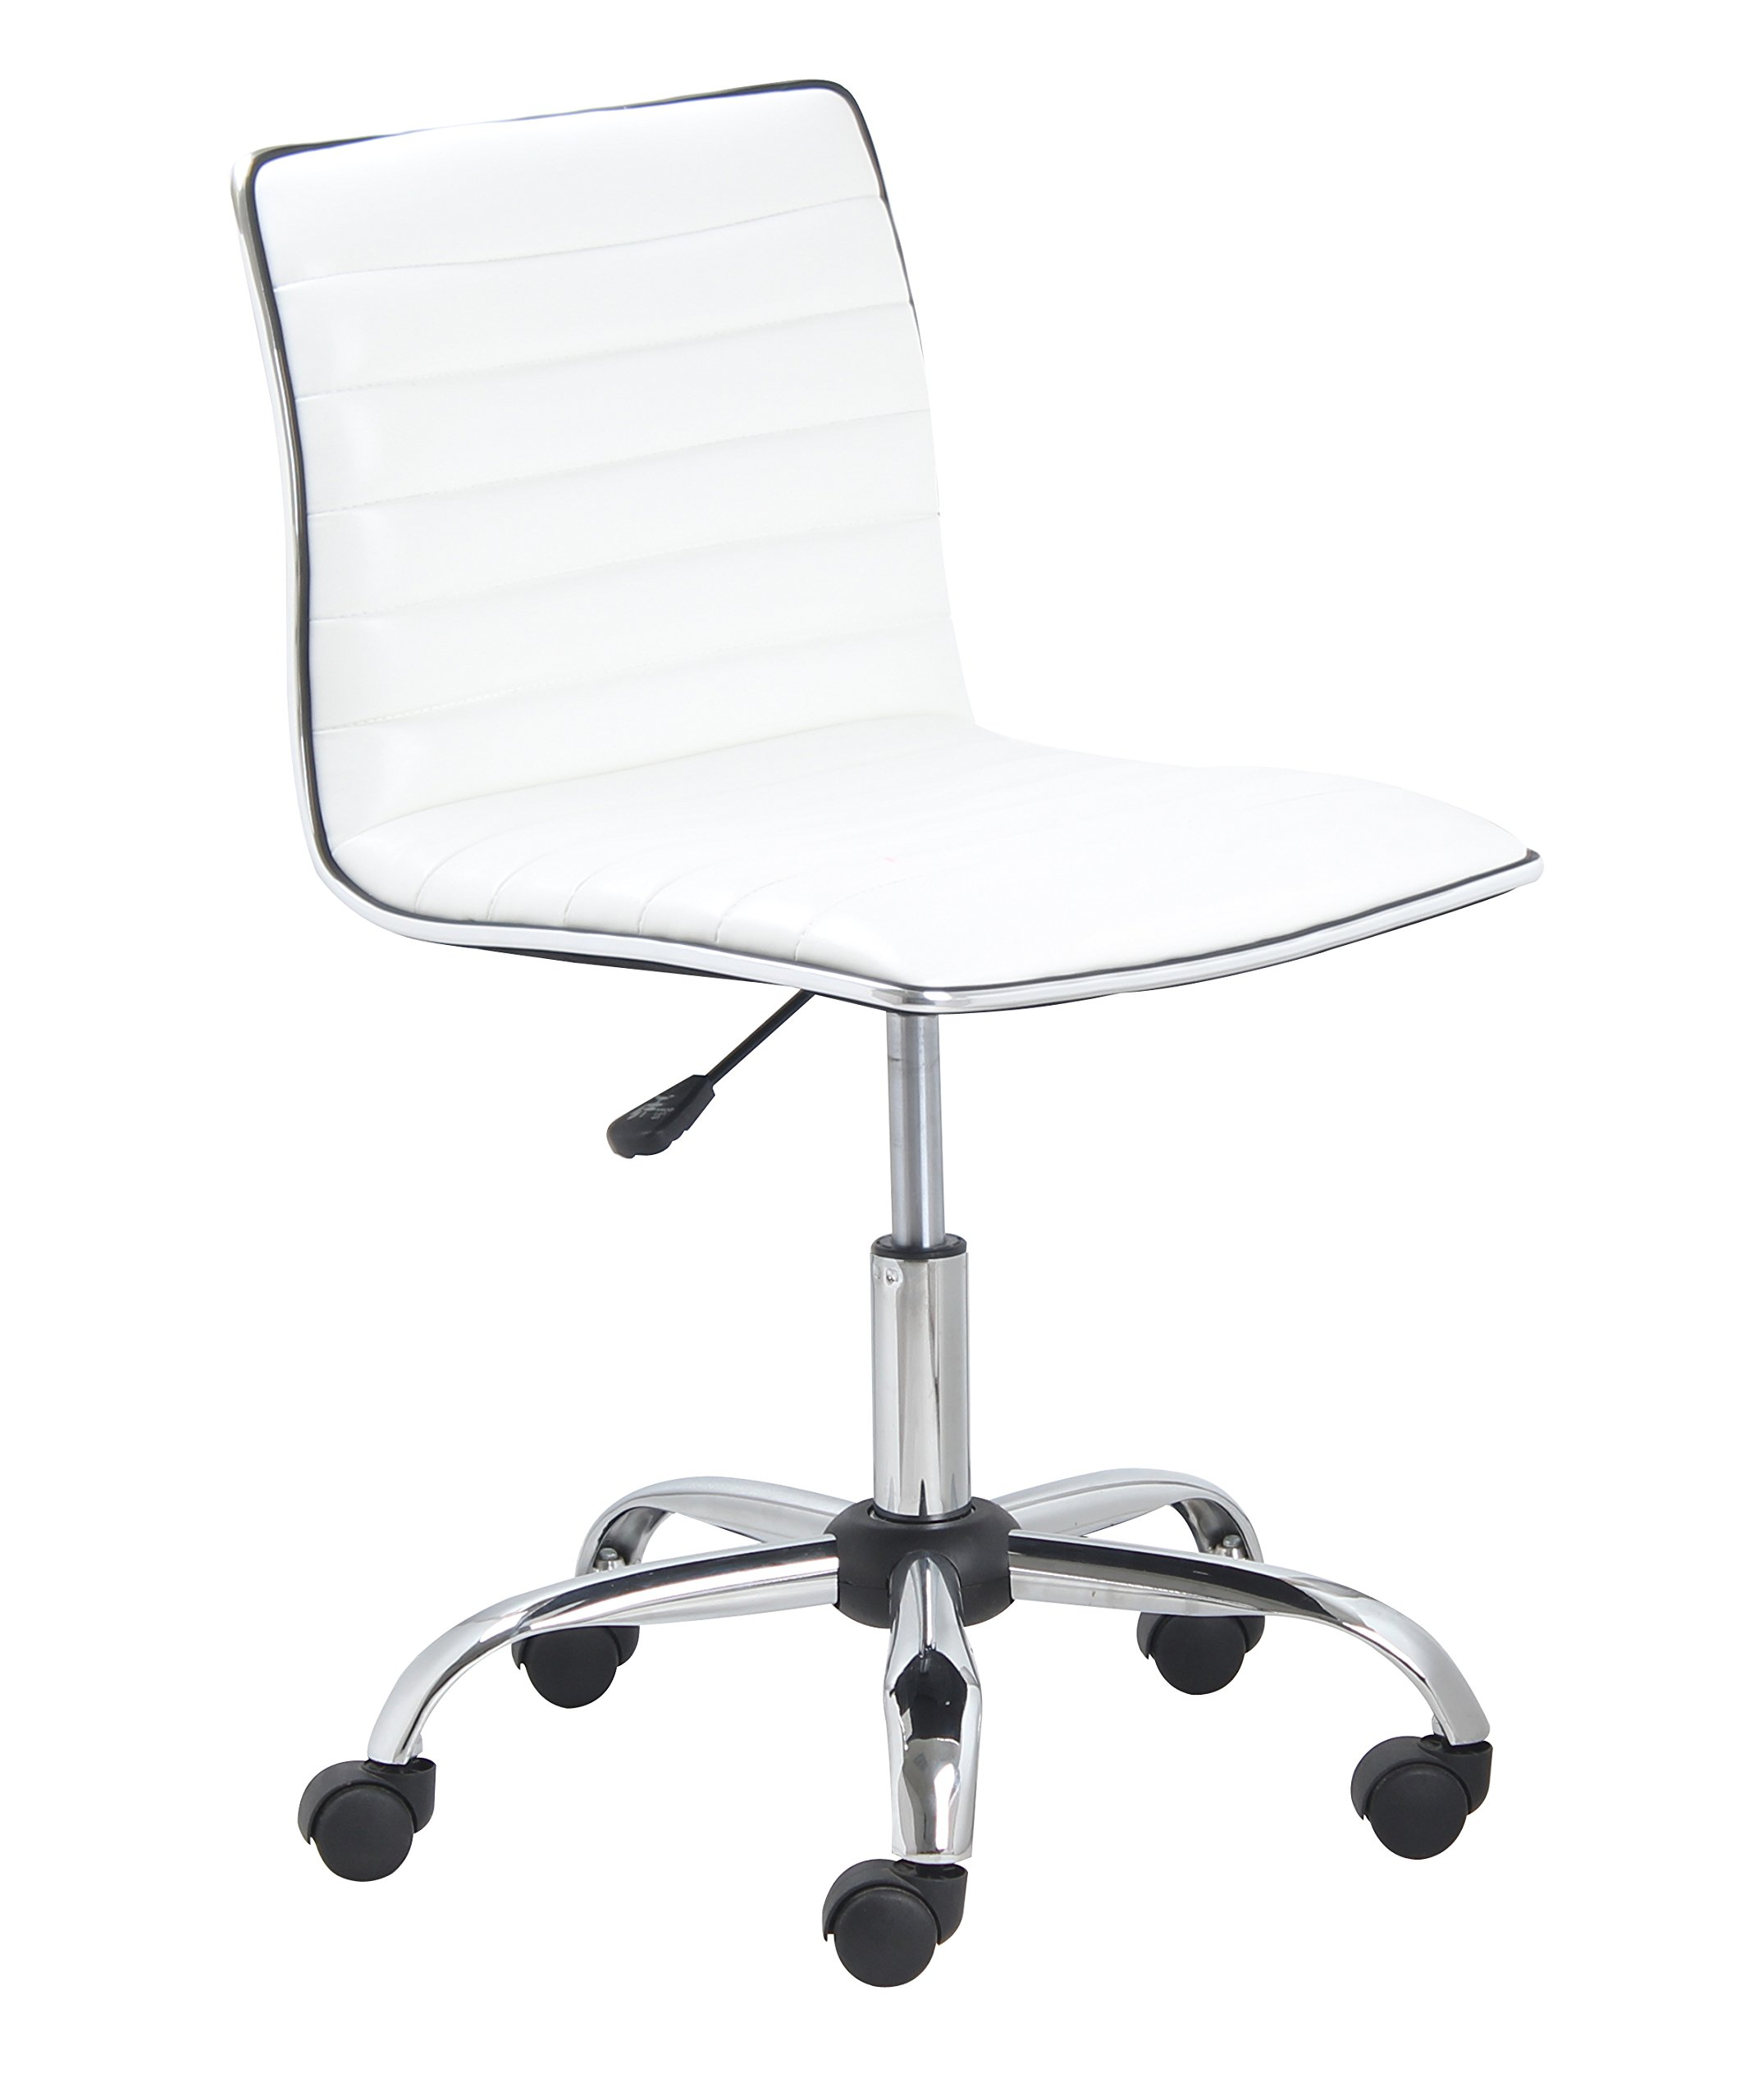 BTEXPERT 5029w BTExpert Swivel Mid Back Armless Ribbed Designer Task Chair Leather Soft Upholstery Office Chair - White by BTEXPERT